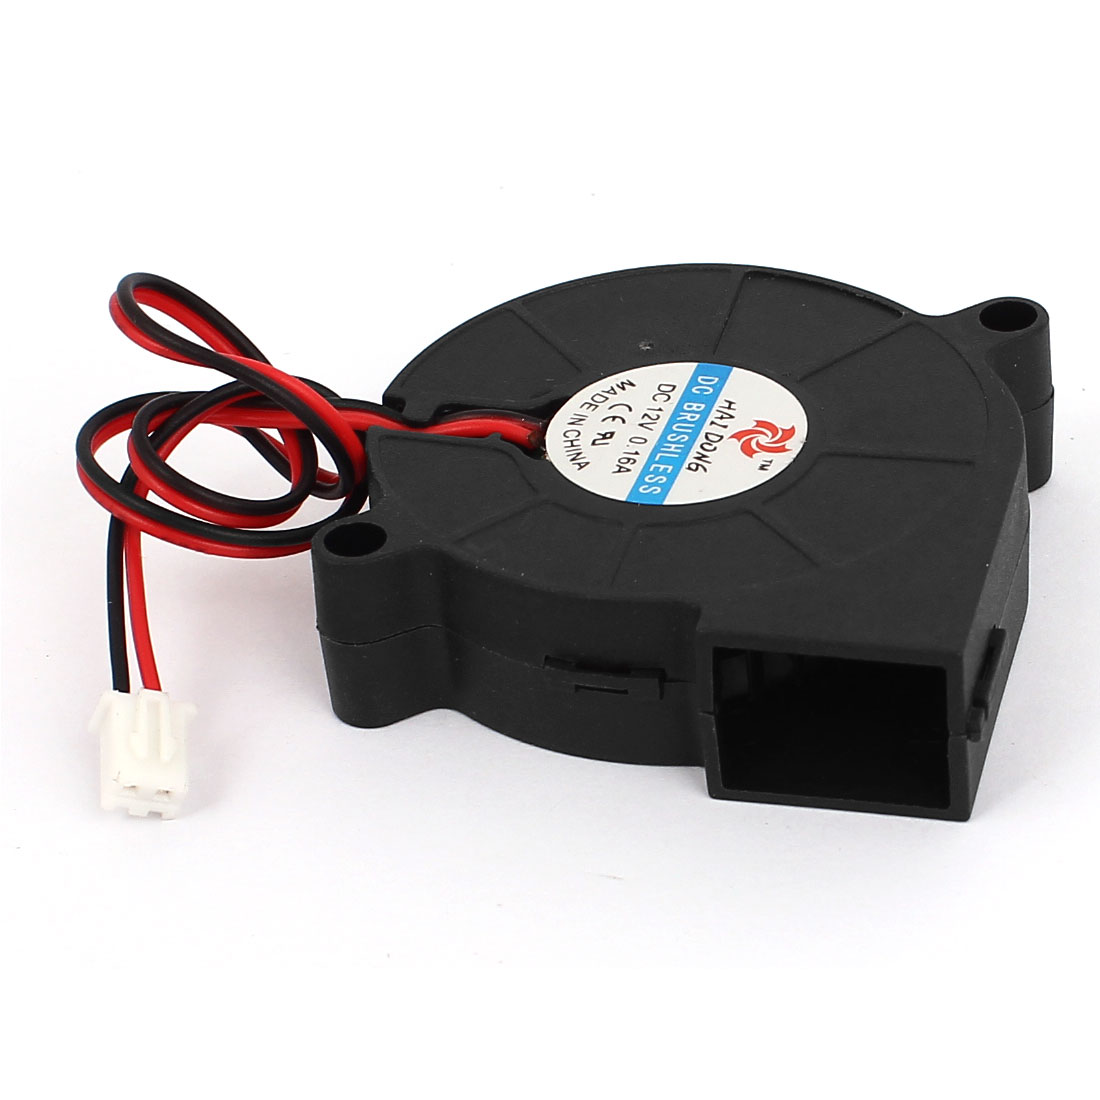 DC 12V 0.16A 5015 50mm x 15mm 2 Pin Connector Brushless C...